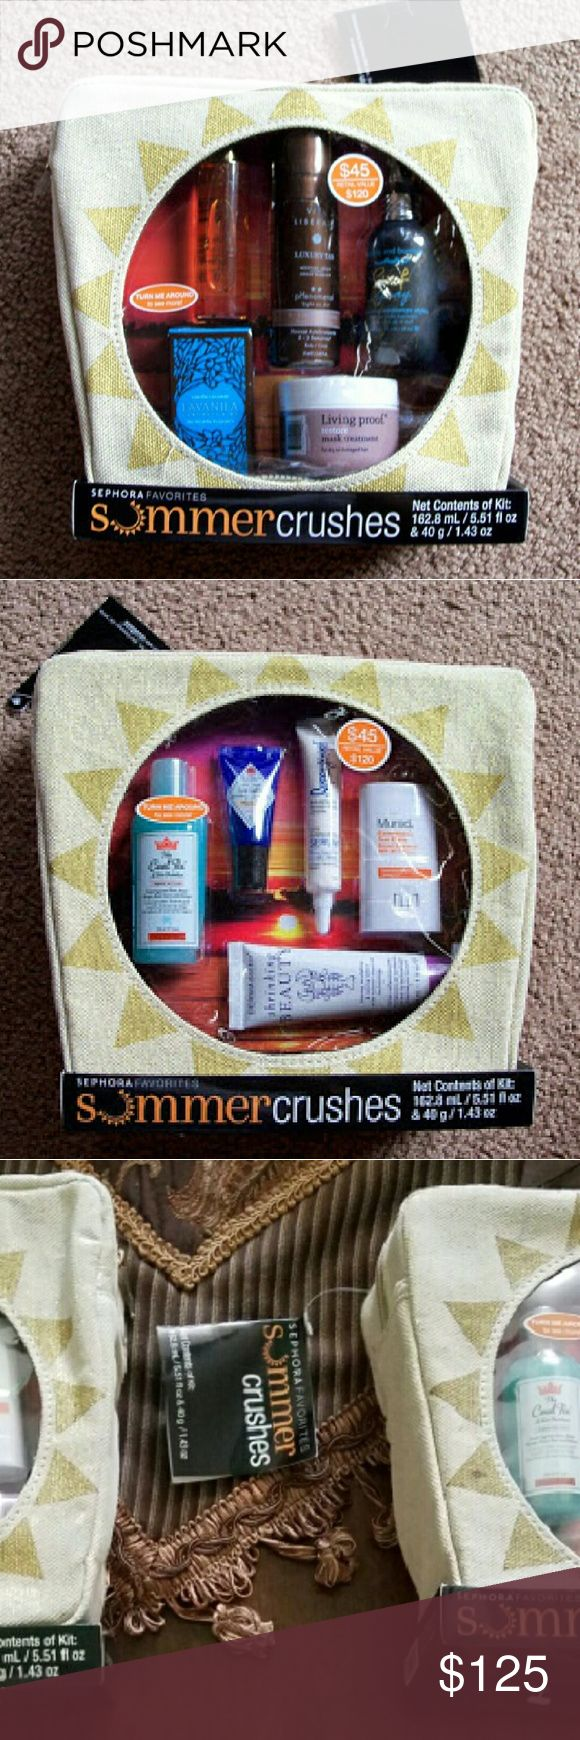 TWO SETS of Sephora Favorites Summer Crushes Kits The Sephora Summer Crushes Kit (QUANTITY OF TWO) are new and sealed. Each large travel bag kit includes: *Caudalie Divine Oil *Vita Liberata pHenomenal Tan Mousse in Medium *Minature Tanning Glove *Bumble and Bumble Surf Spray *Lavinila The Healthy Fragrance in Vanilla Coconut *Living Proof Restore Mask Treatment *Shaveworks The Cool Fix *Jack Black Intense Therapy Lip Balm in SPF 25in Shea Bin Shea Butter and Vitamin E *Supergoop! City…